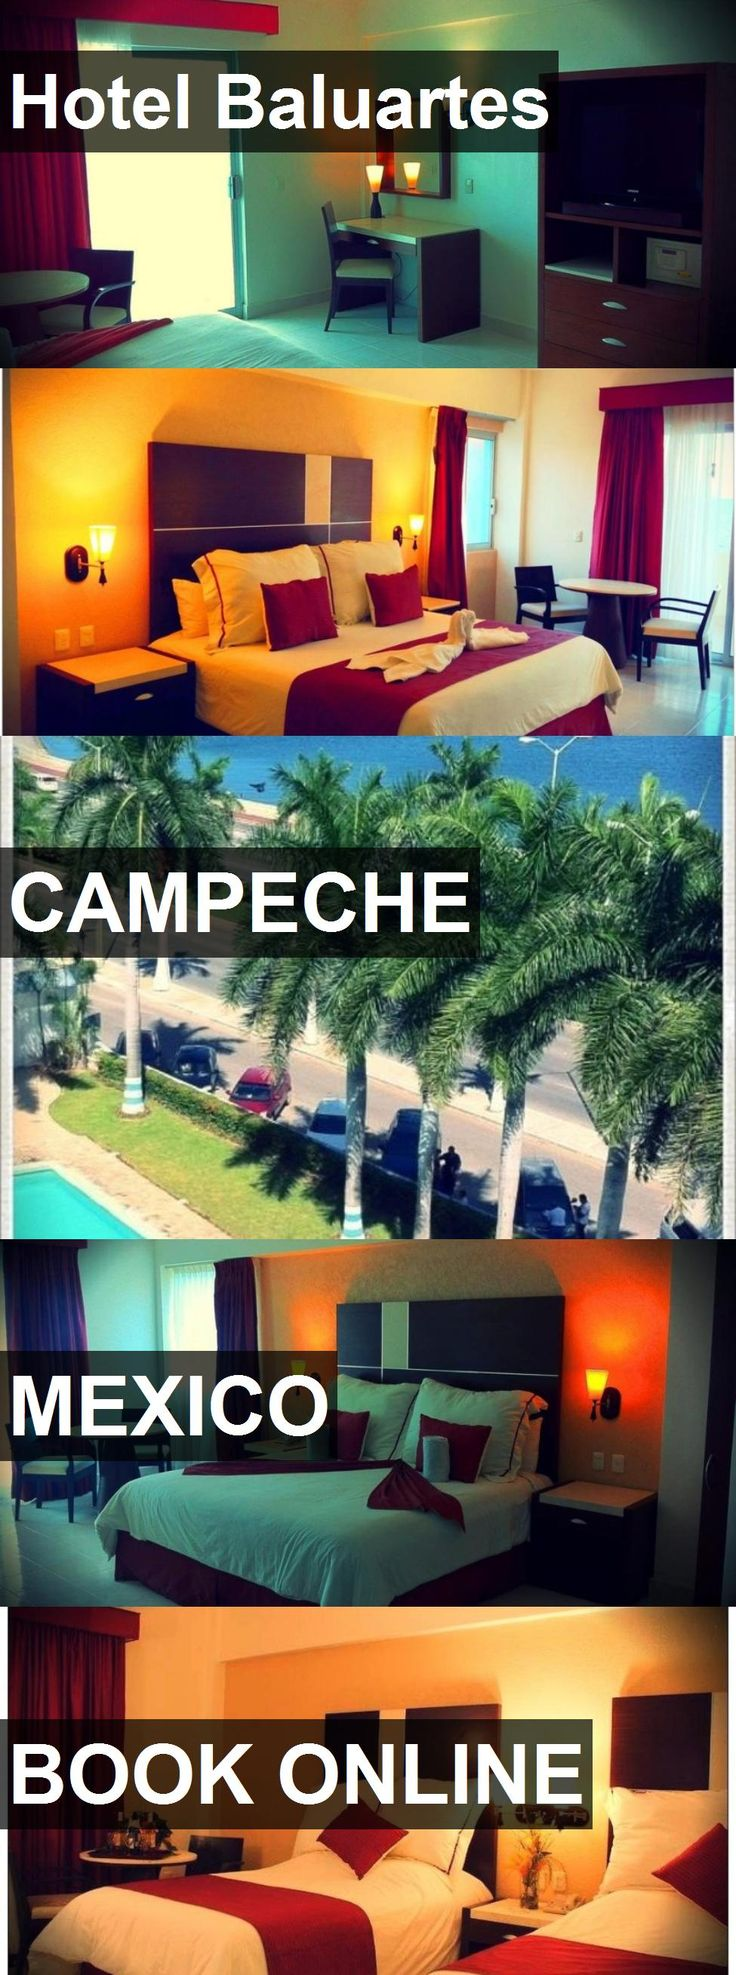 Hotel Hotel Baluartes in Campeche, Mexico. For more information, photos, reviews and best prices please follow the link. #Mexico #Campeche #HotelBaluartes #hotel #travel #vacation